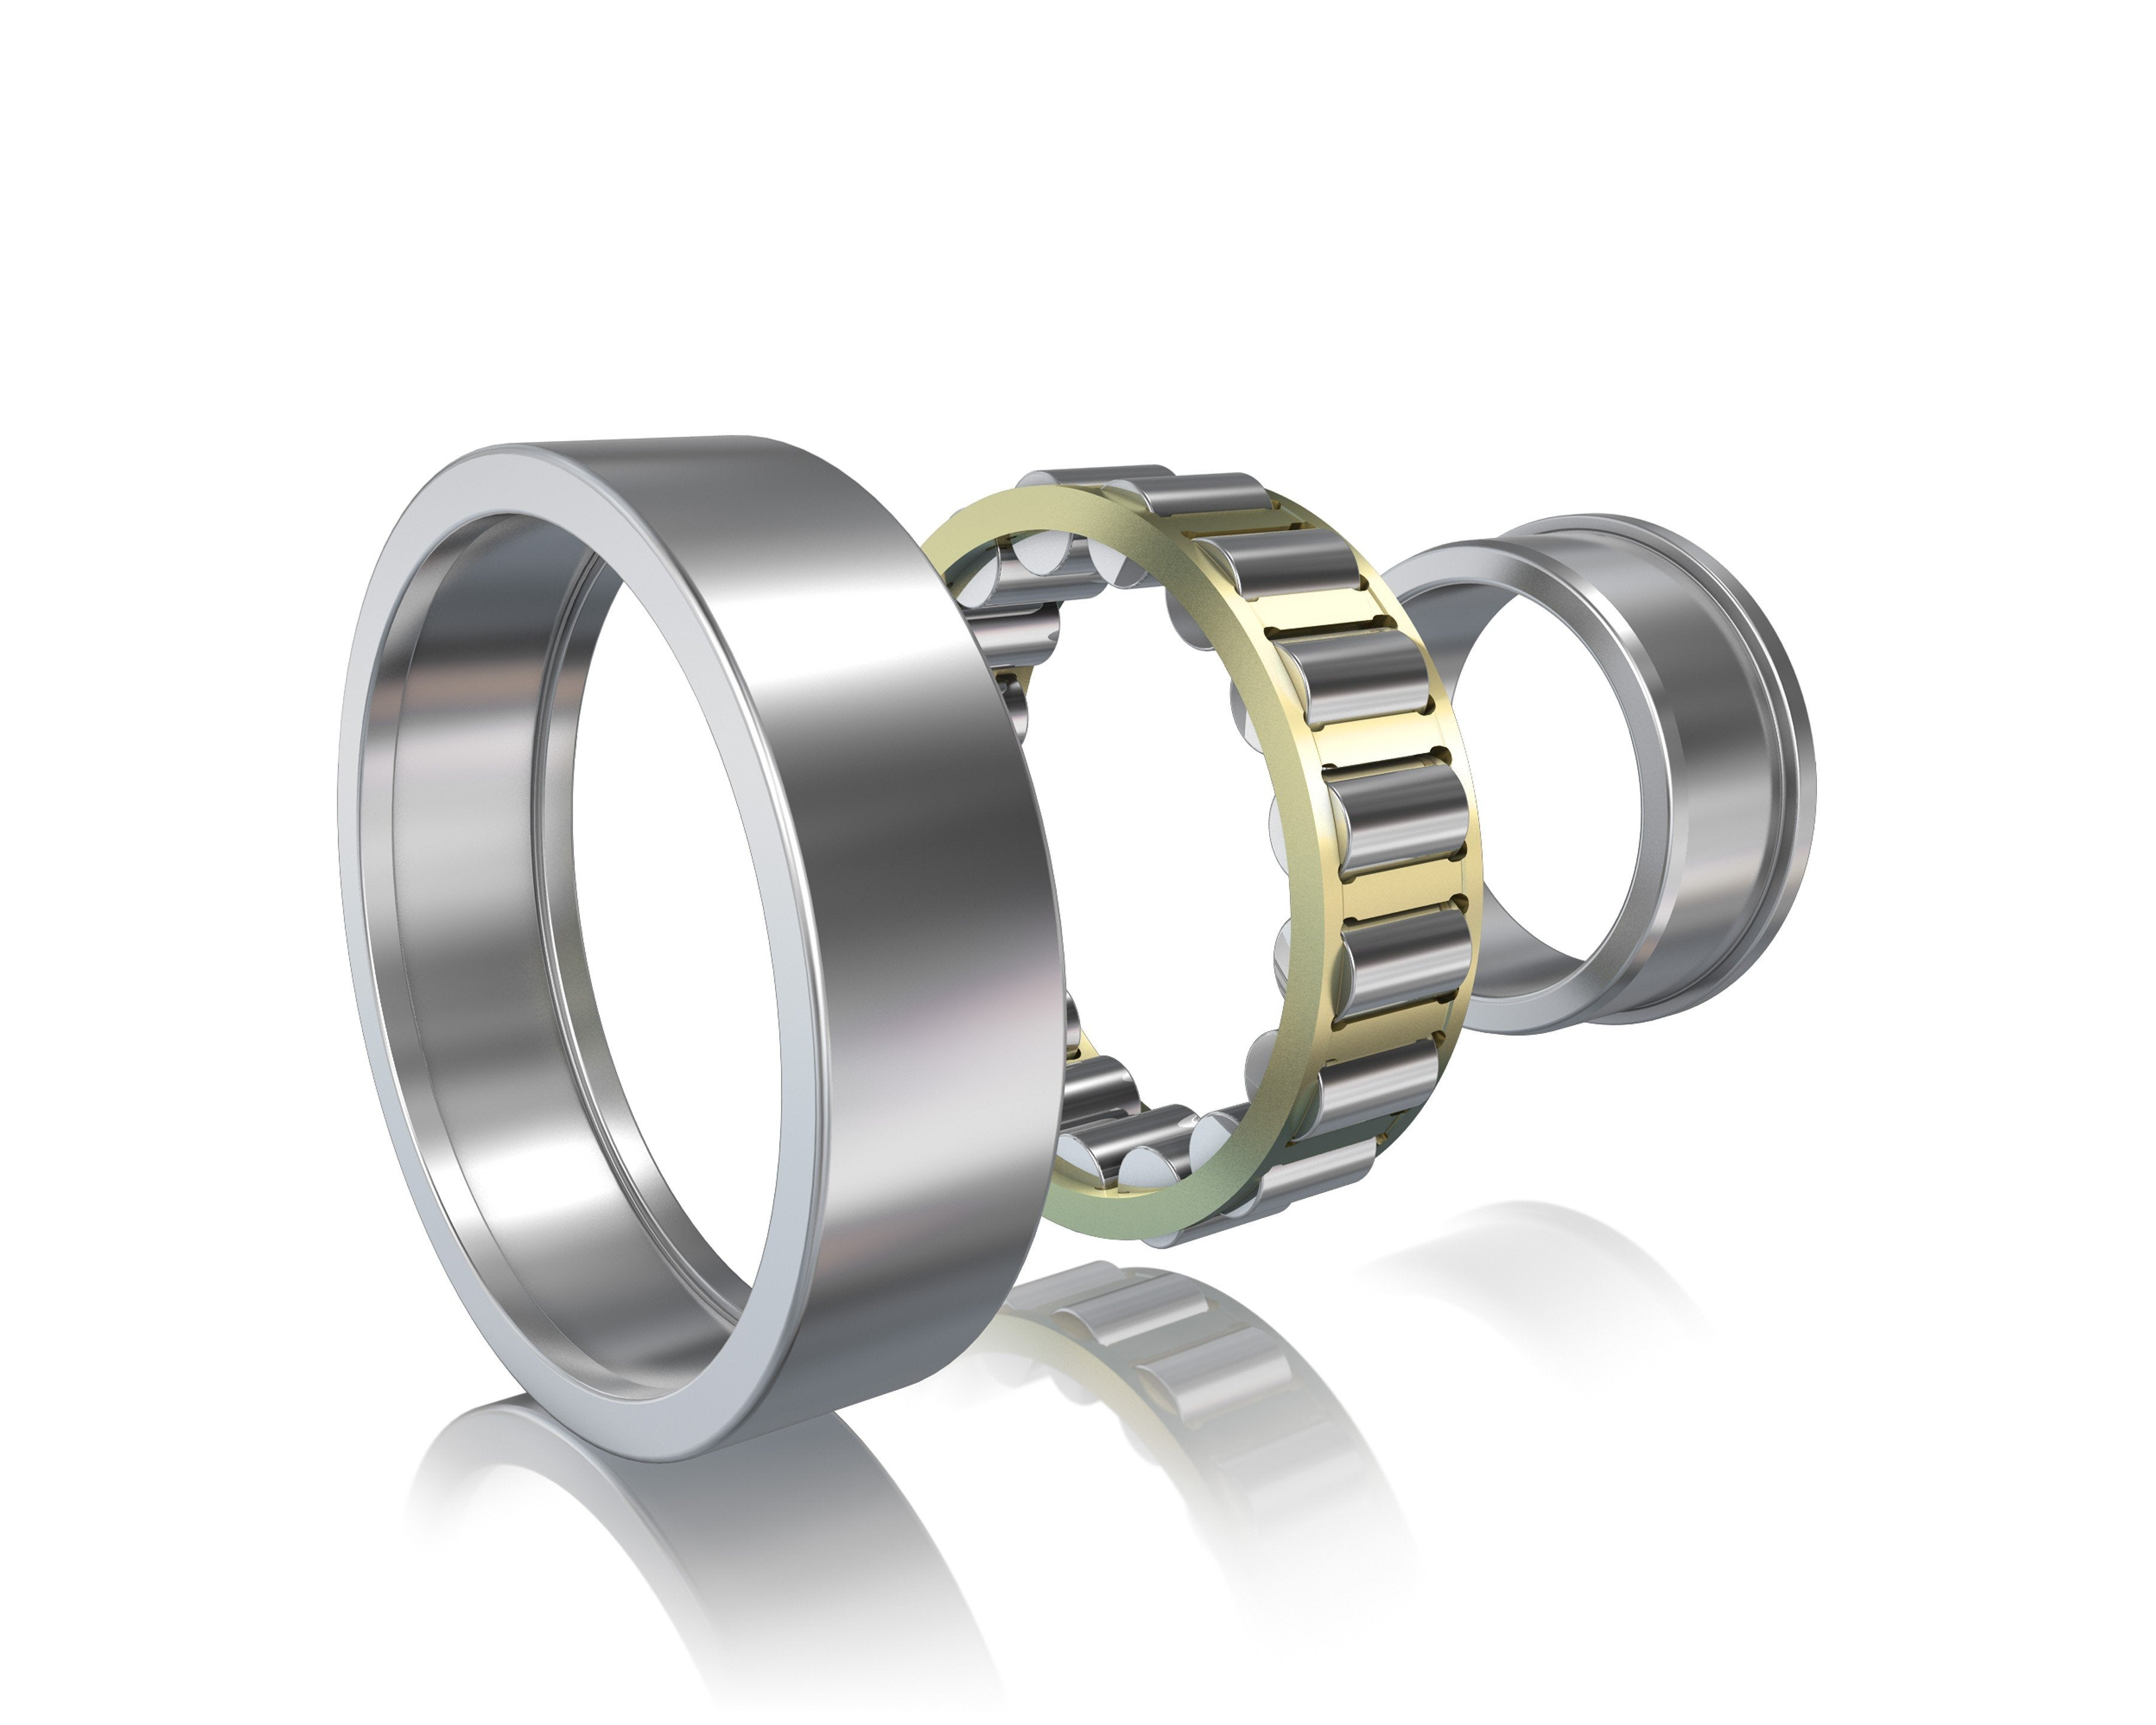 NUP224-EM-NSK, Bearings, Cylindrical roller bearings